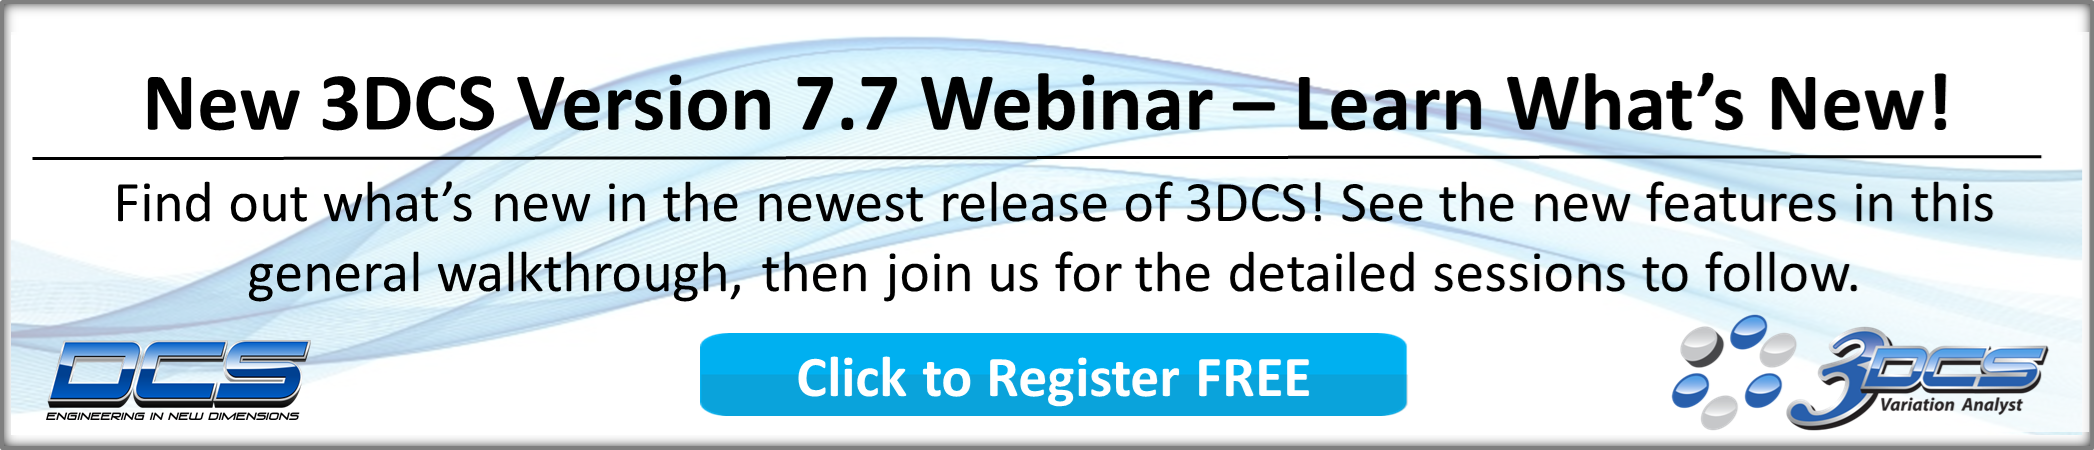 2020 Webinar Series Registration